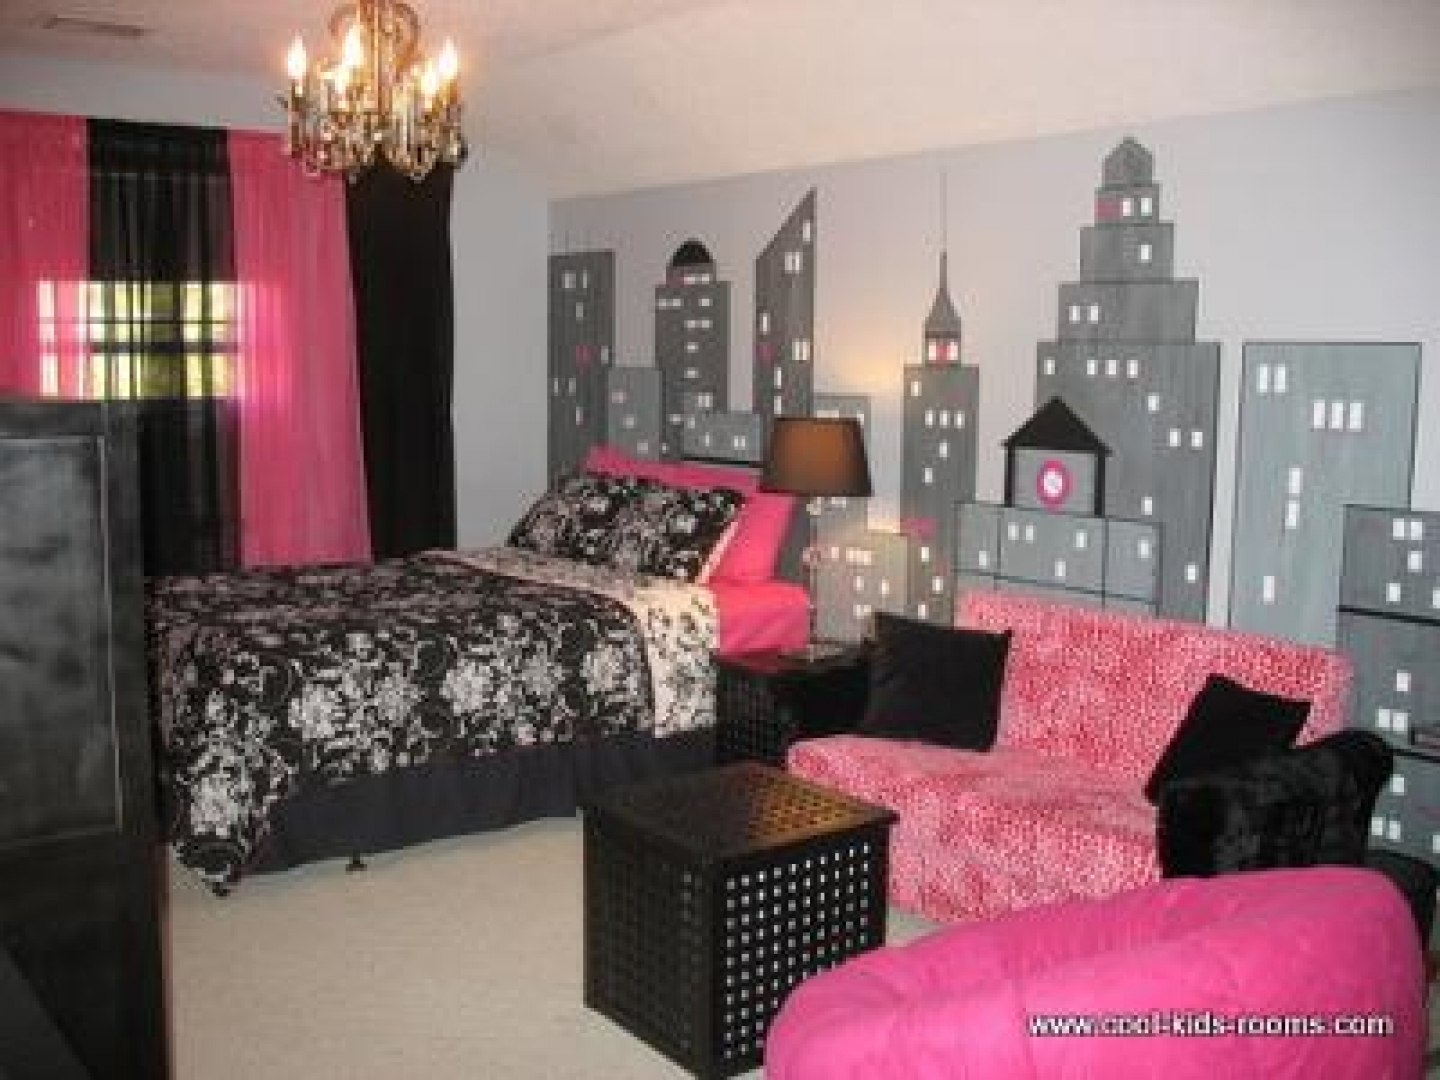 Pink And Black Bedroom Wallpaper Pink And Black Wallpaper For Bedroom